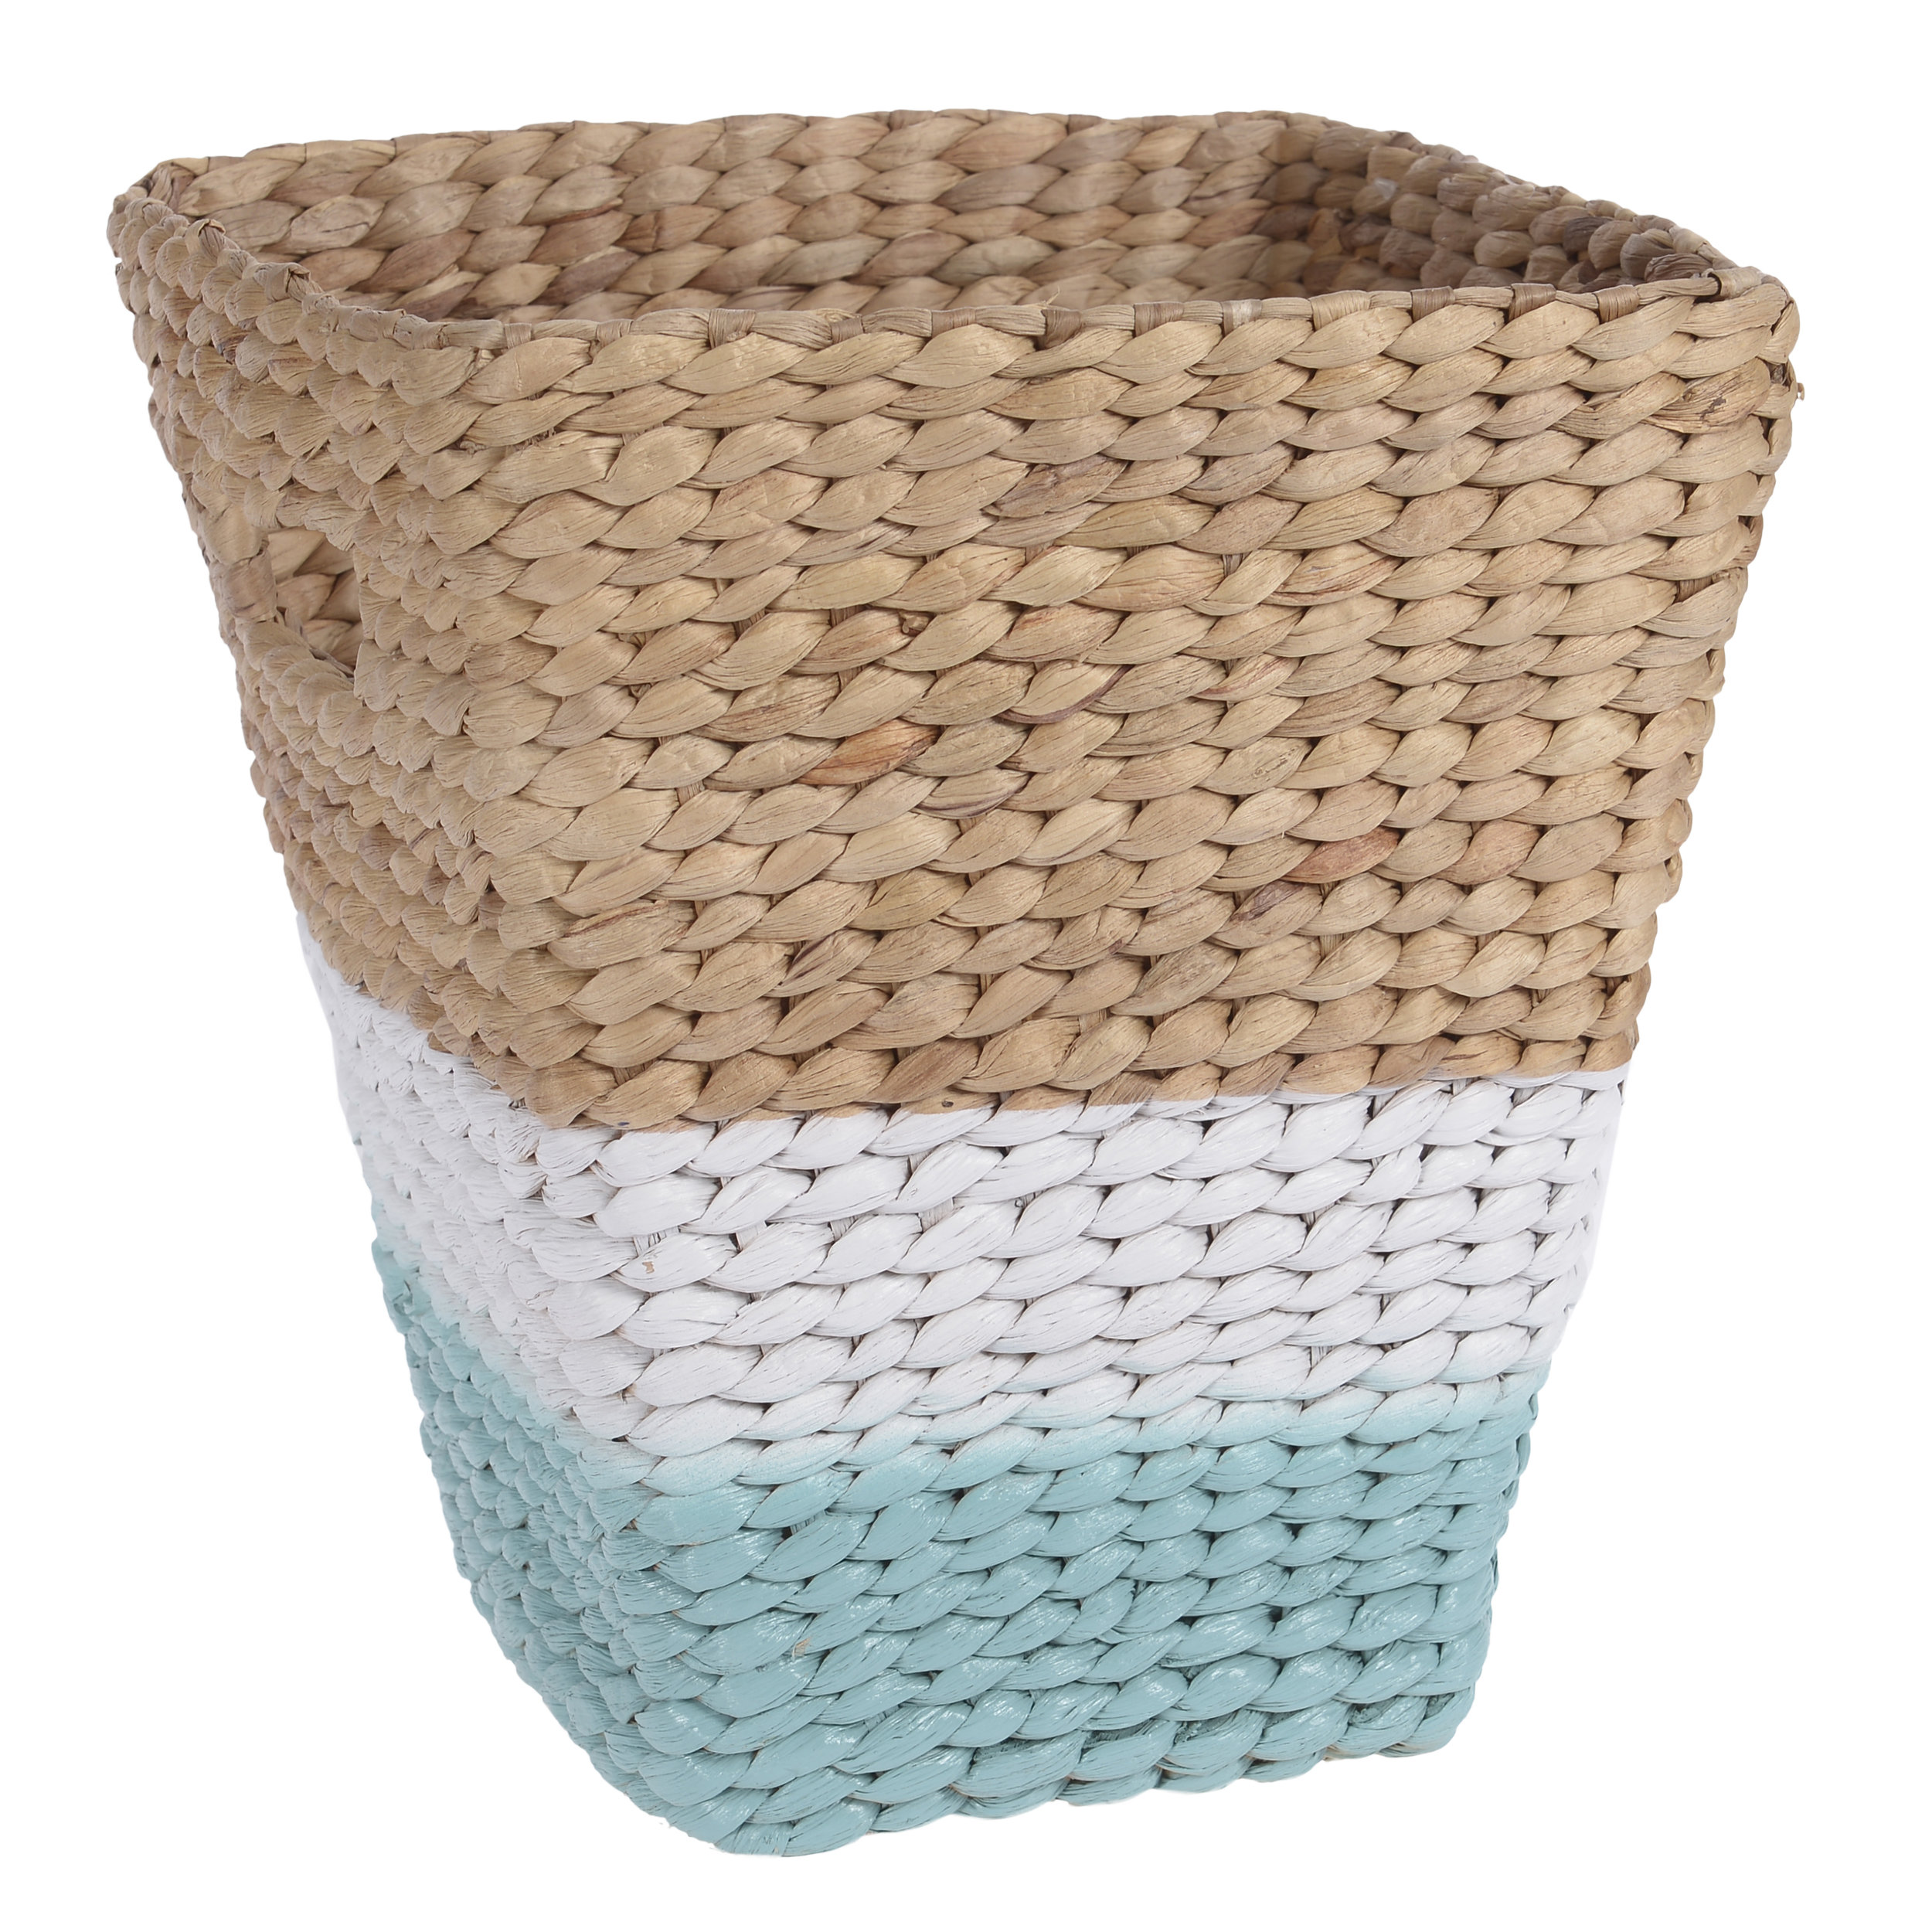 €25 WATER HYACINTH BASKET IN TURQUOISE/NATURAL COLOR 29X26X30